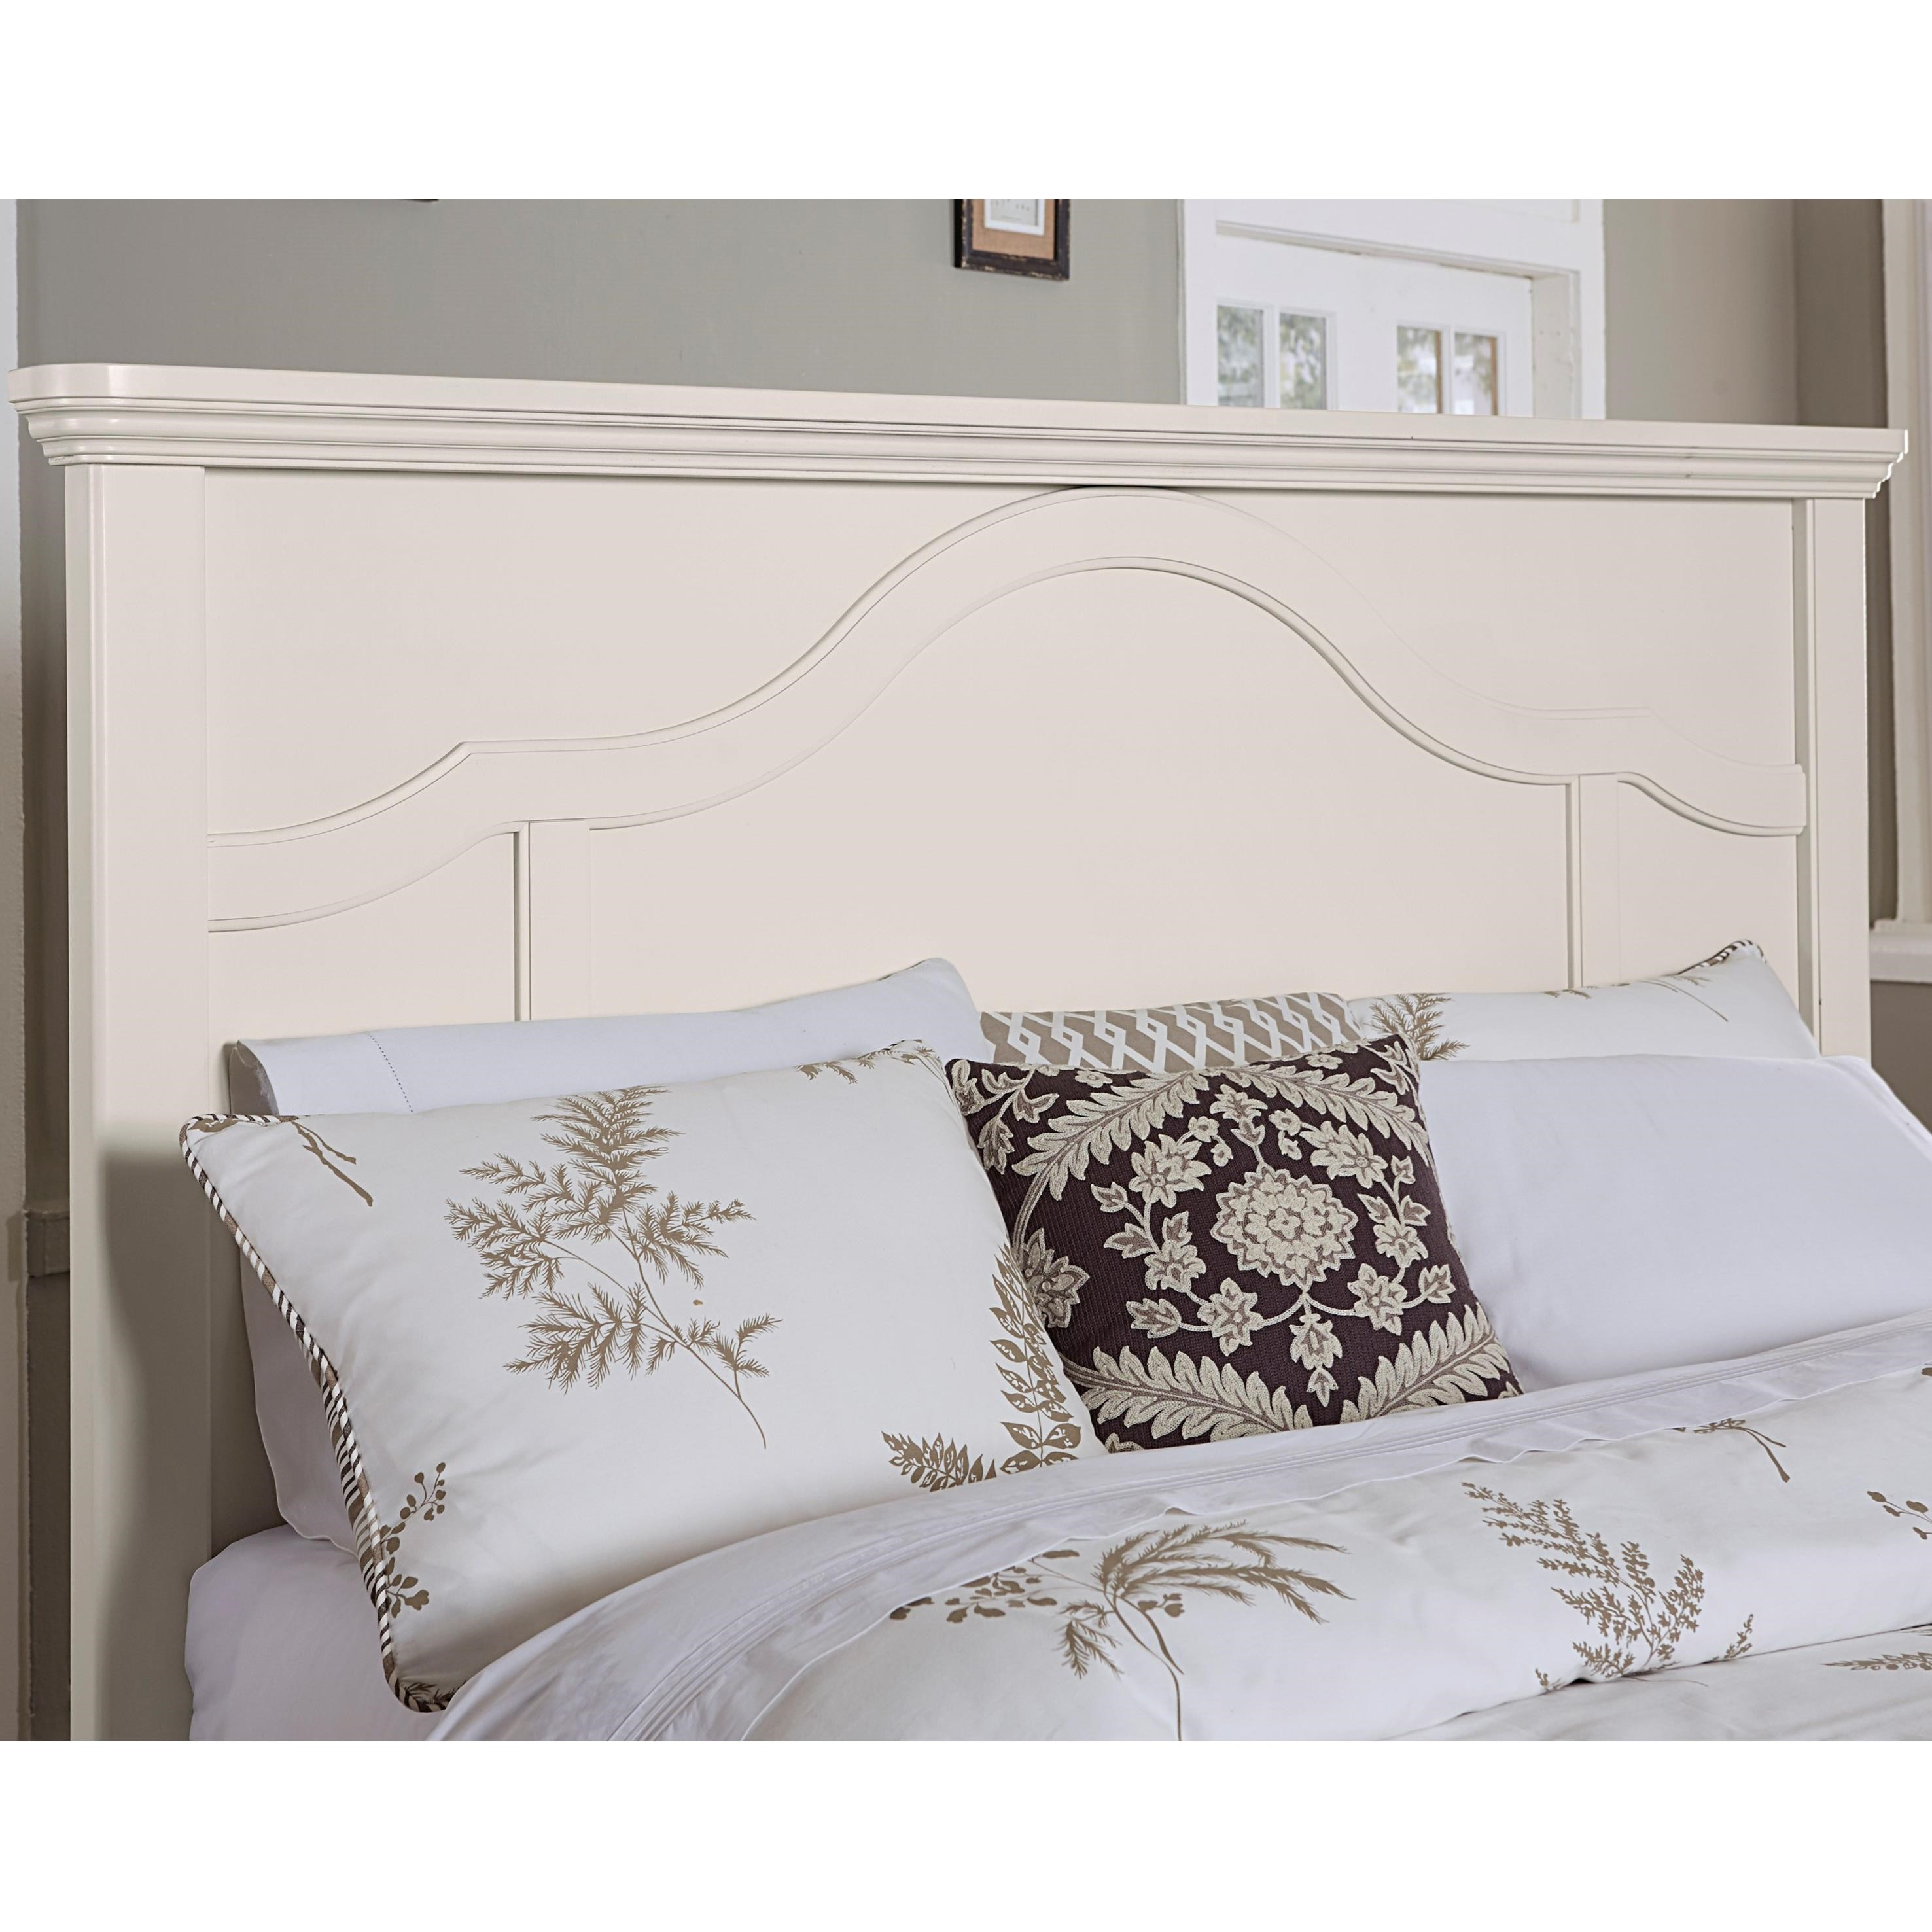 Bungalow King Mantel Headboard by Laurel Mercantile Co. at Johnny Janosik